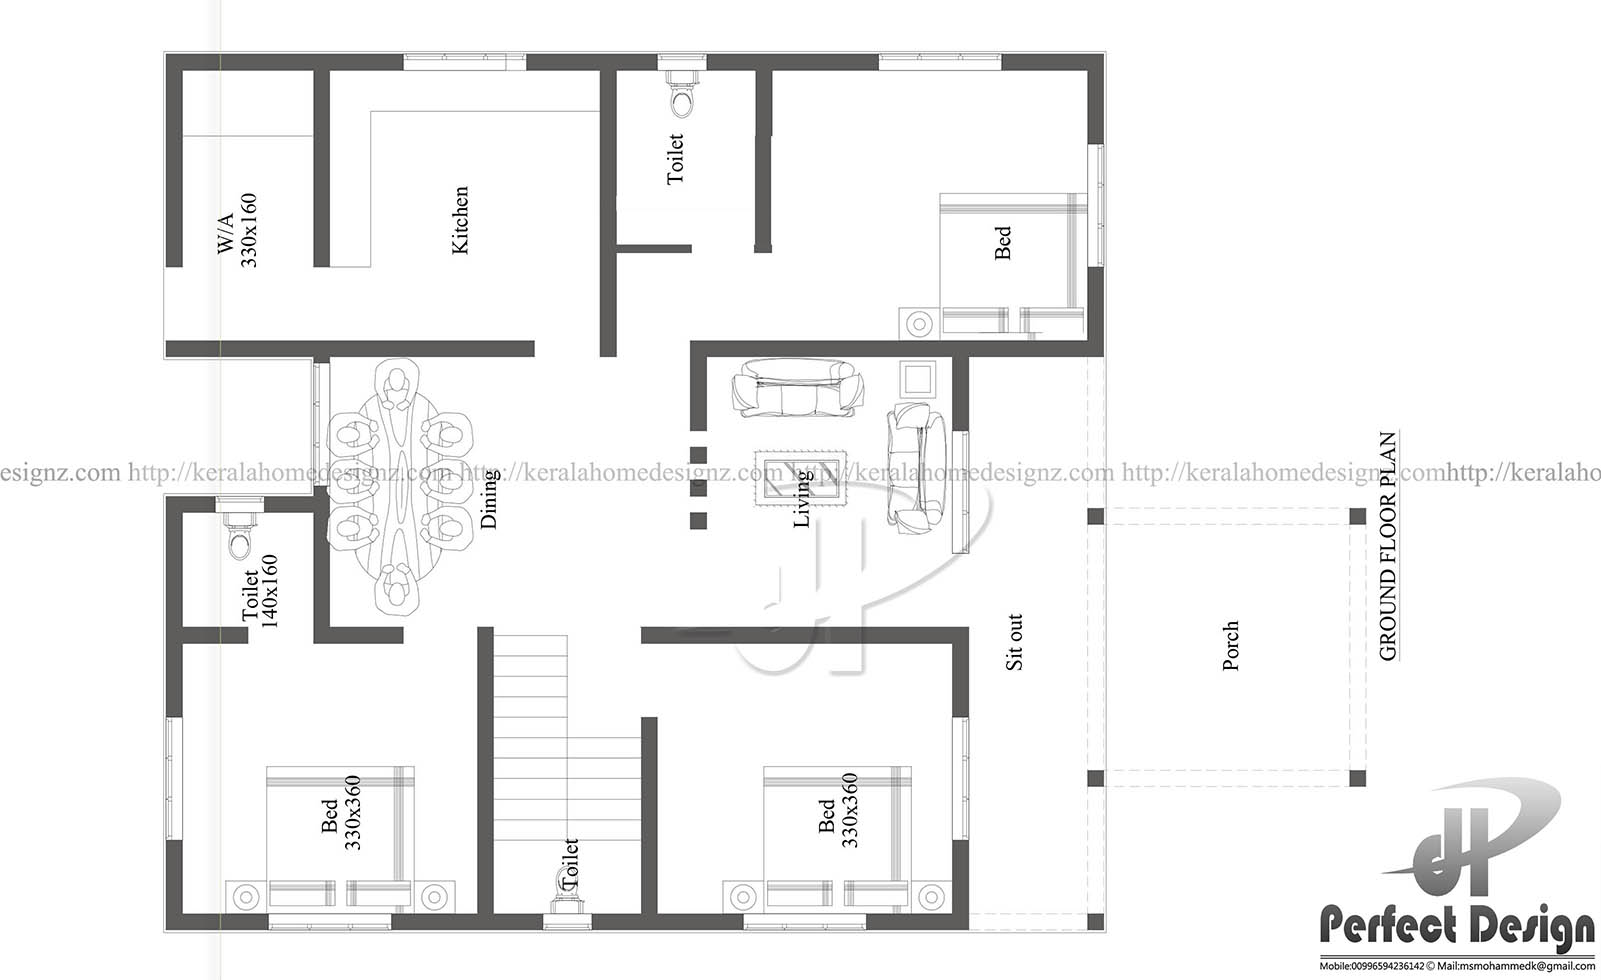 3 bedroom floor plan with dimensions in meters for 150 square meters house floor plan